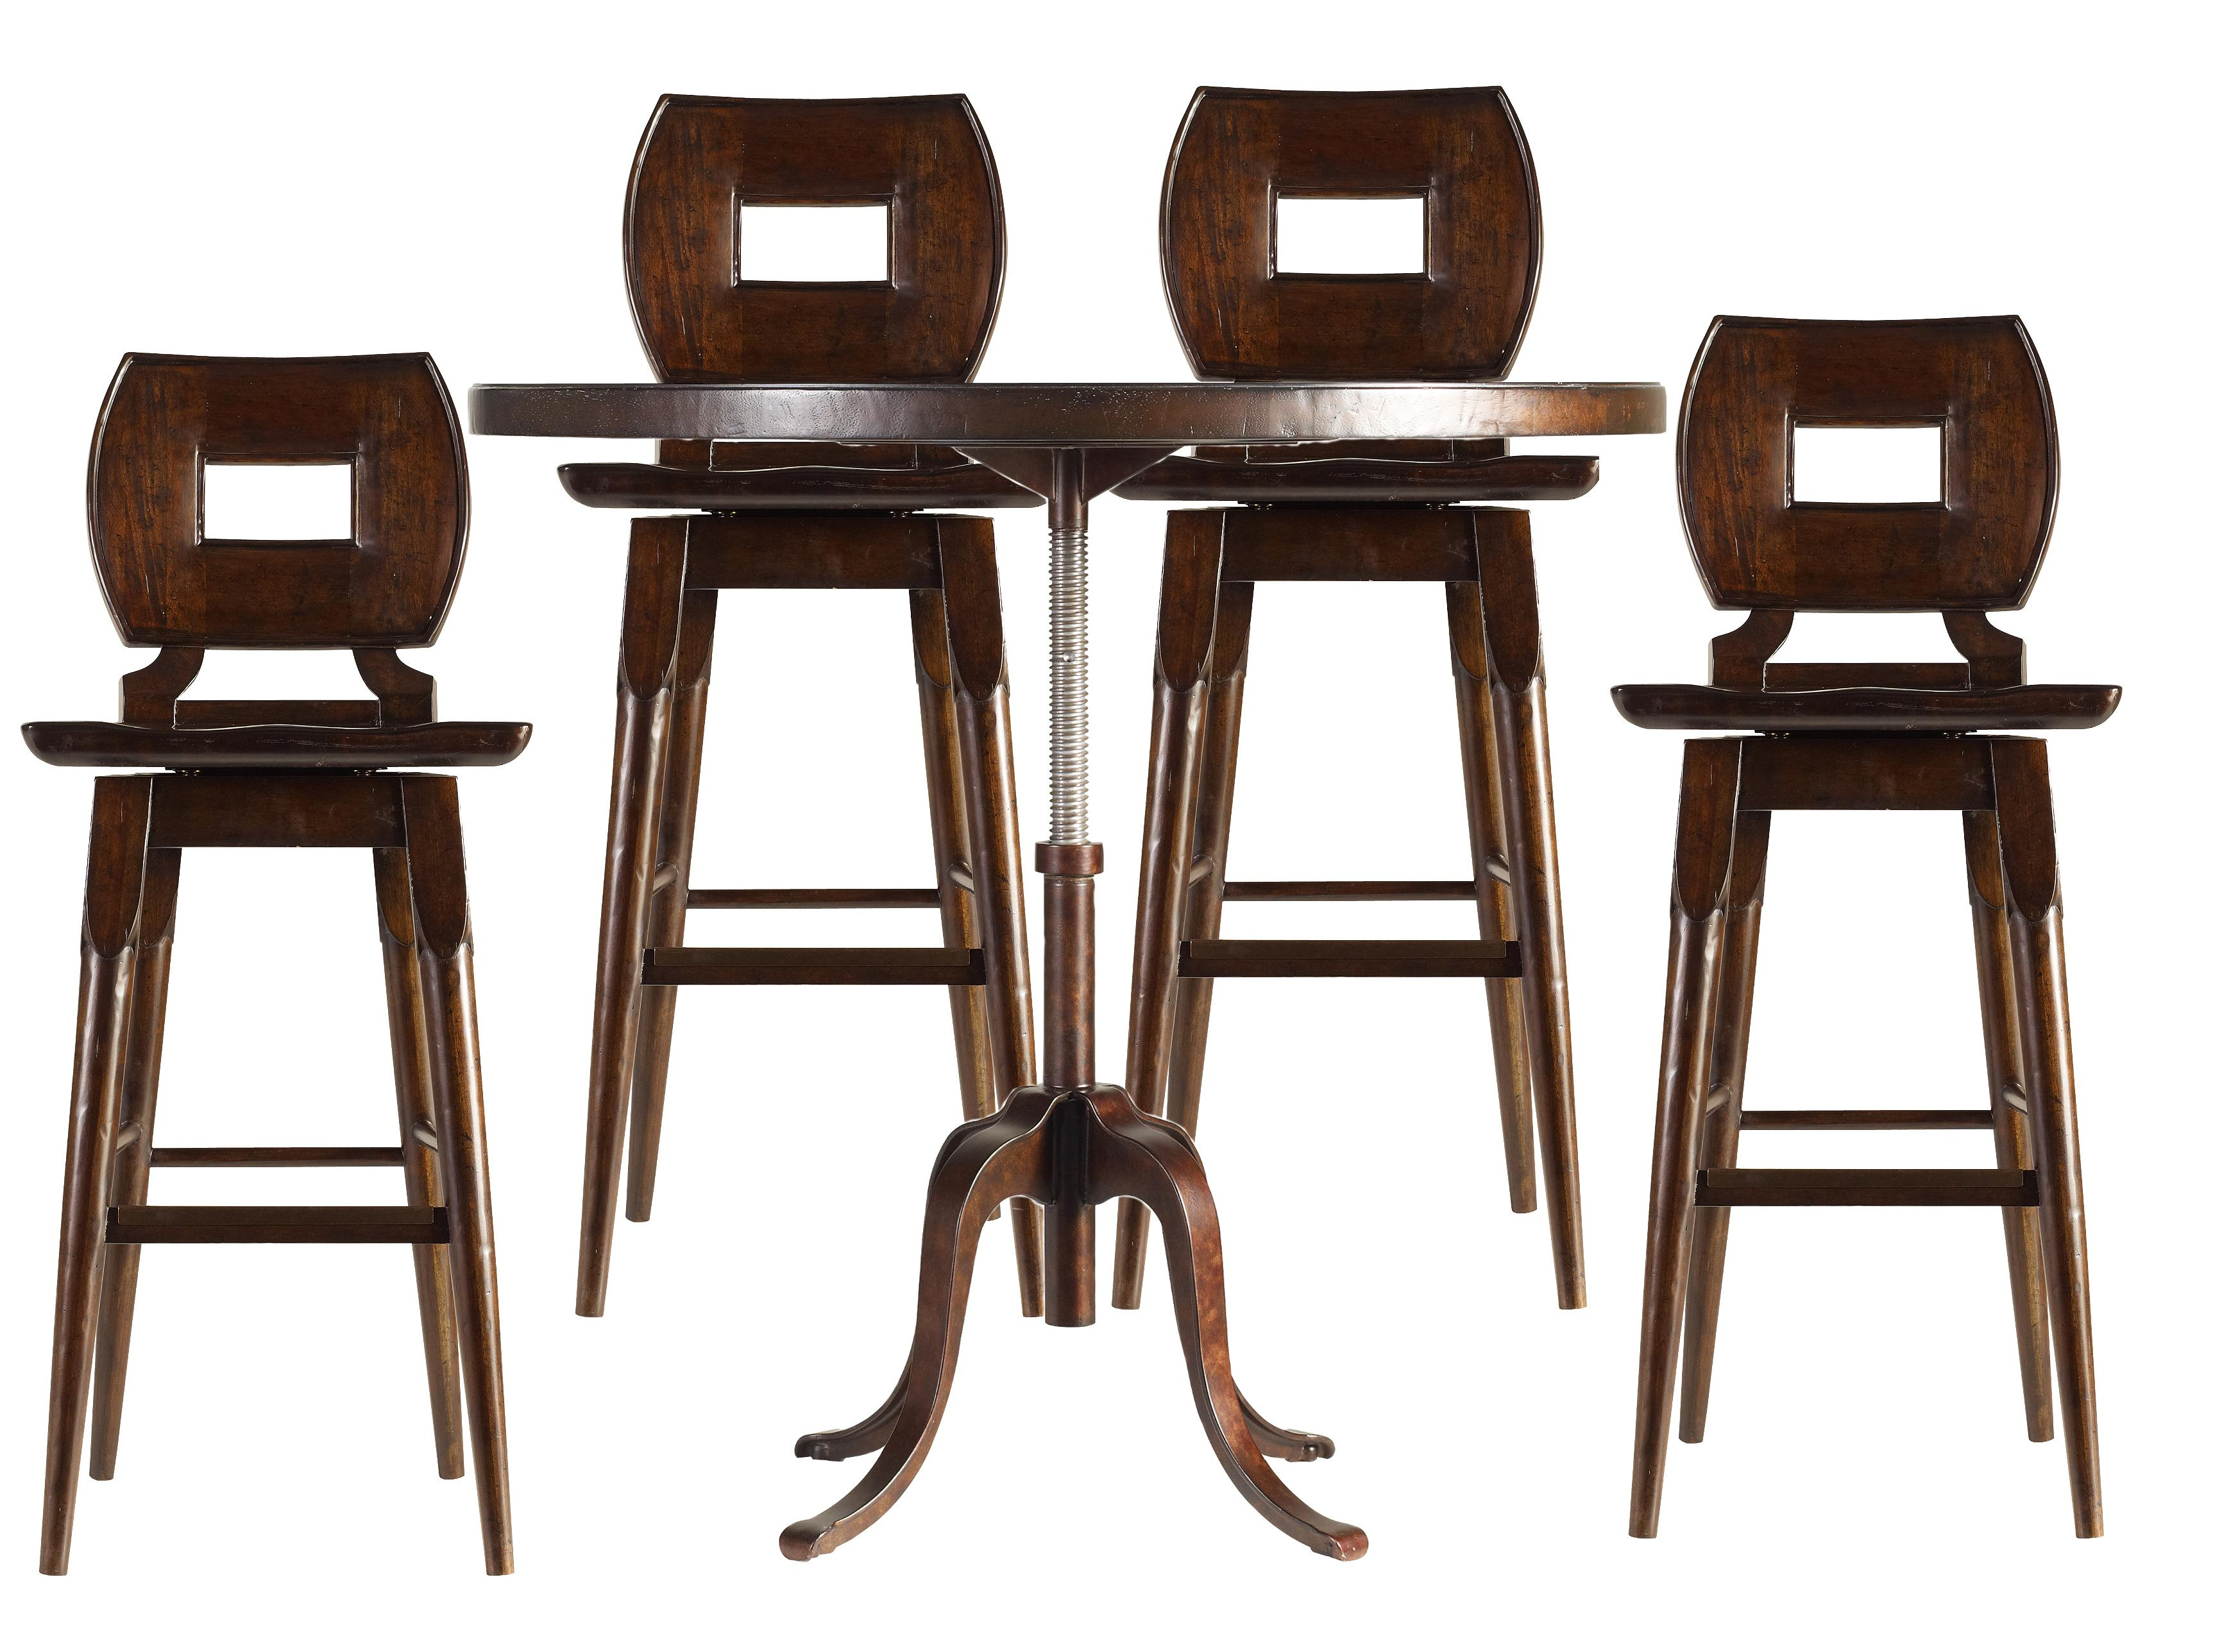 Stanley Furniture The Classic Portfolio Artisan 5Pc Adjustable Height Table and Bar Stools - Item Number: 135-11-230+130+4x73